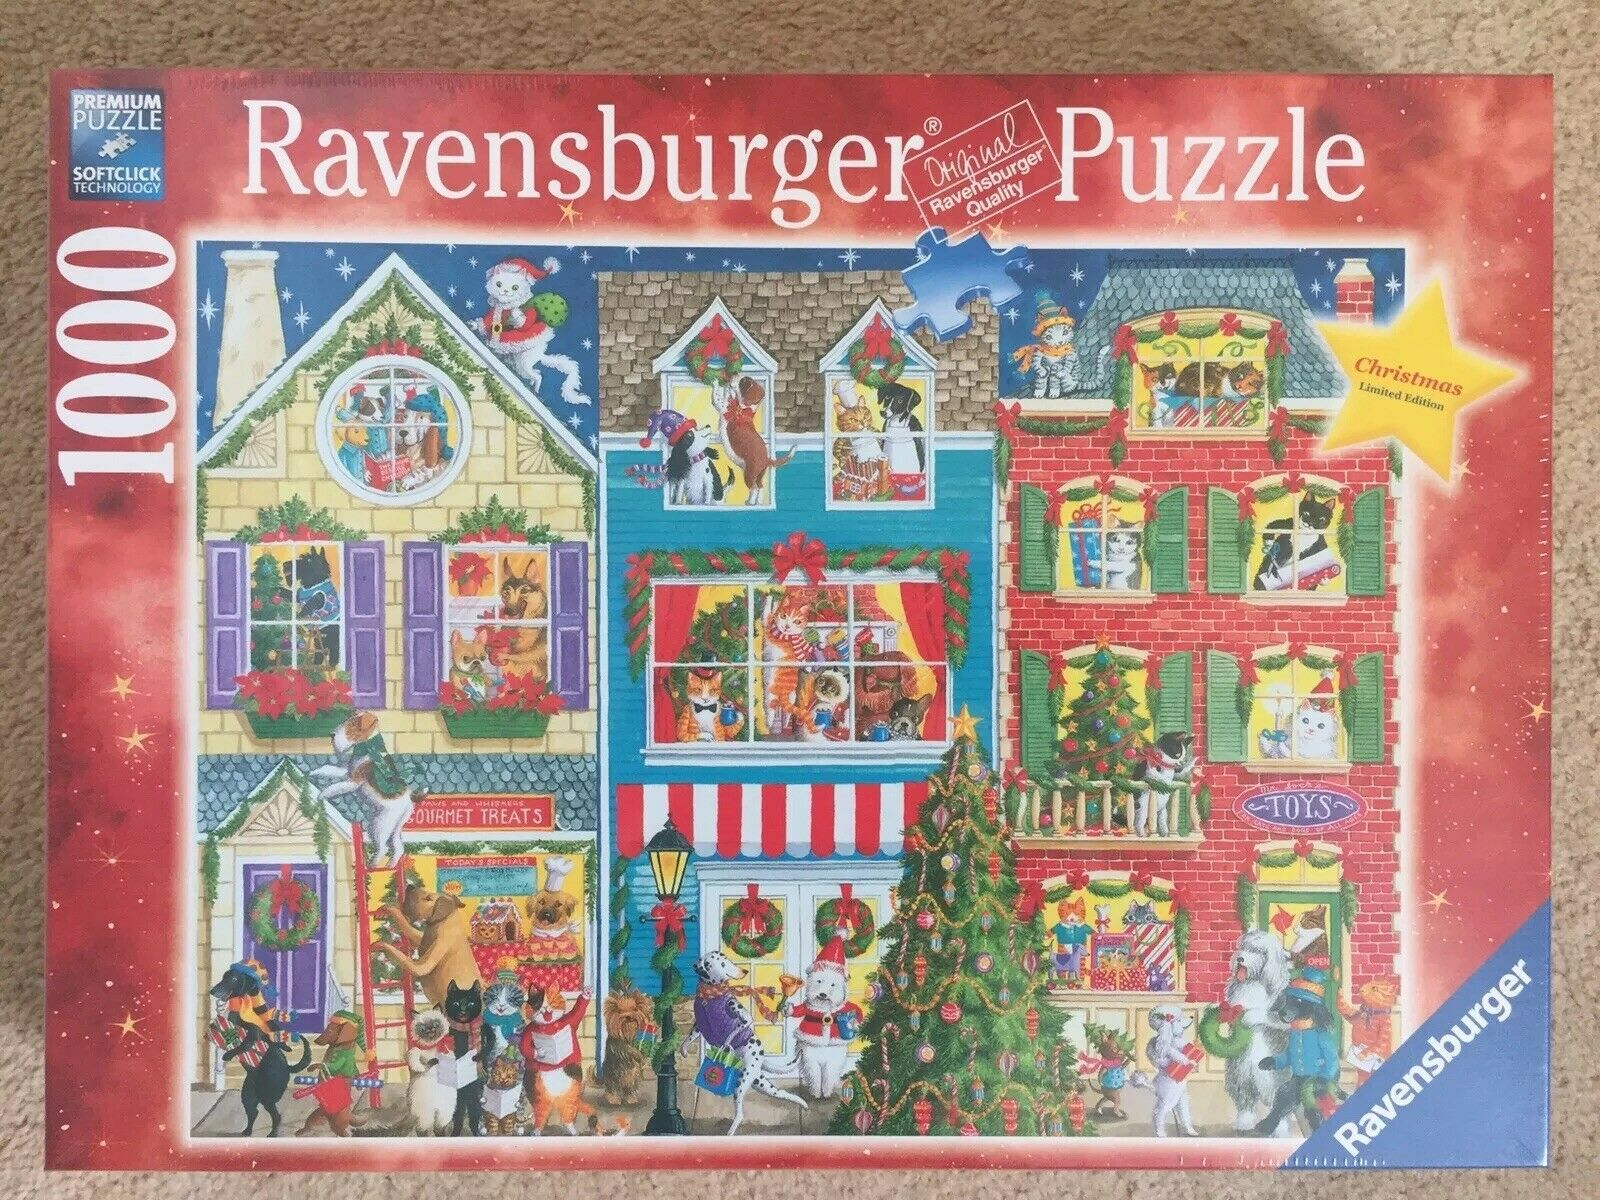 Ravensburger Christmas On Pet Street 1000 Piece Jigsaw, Very Rare, New